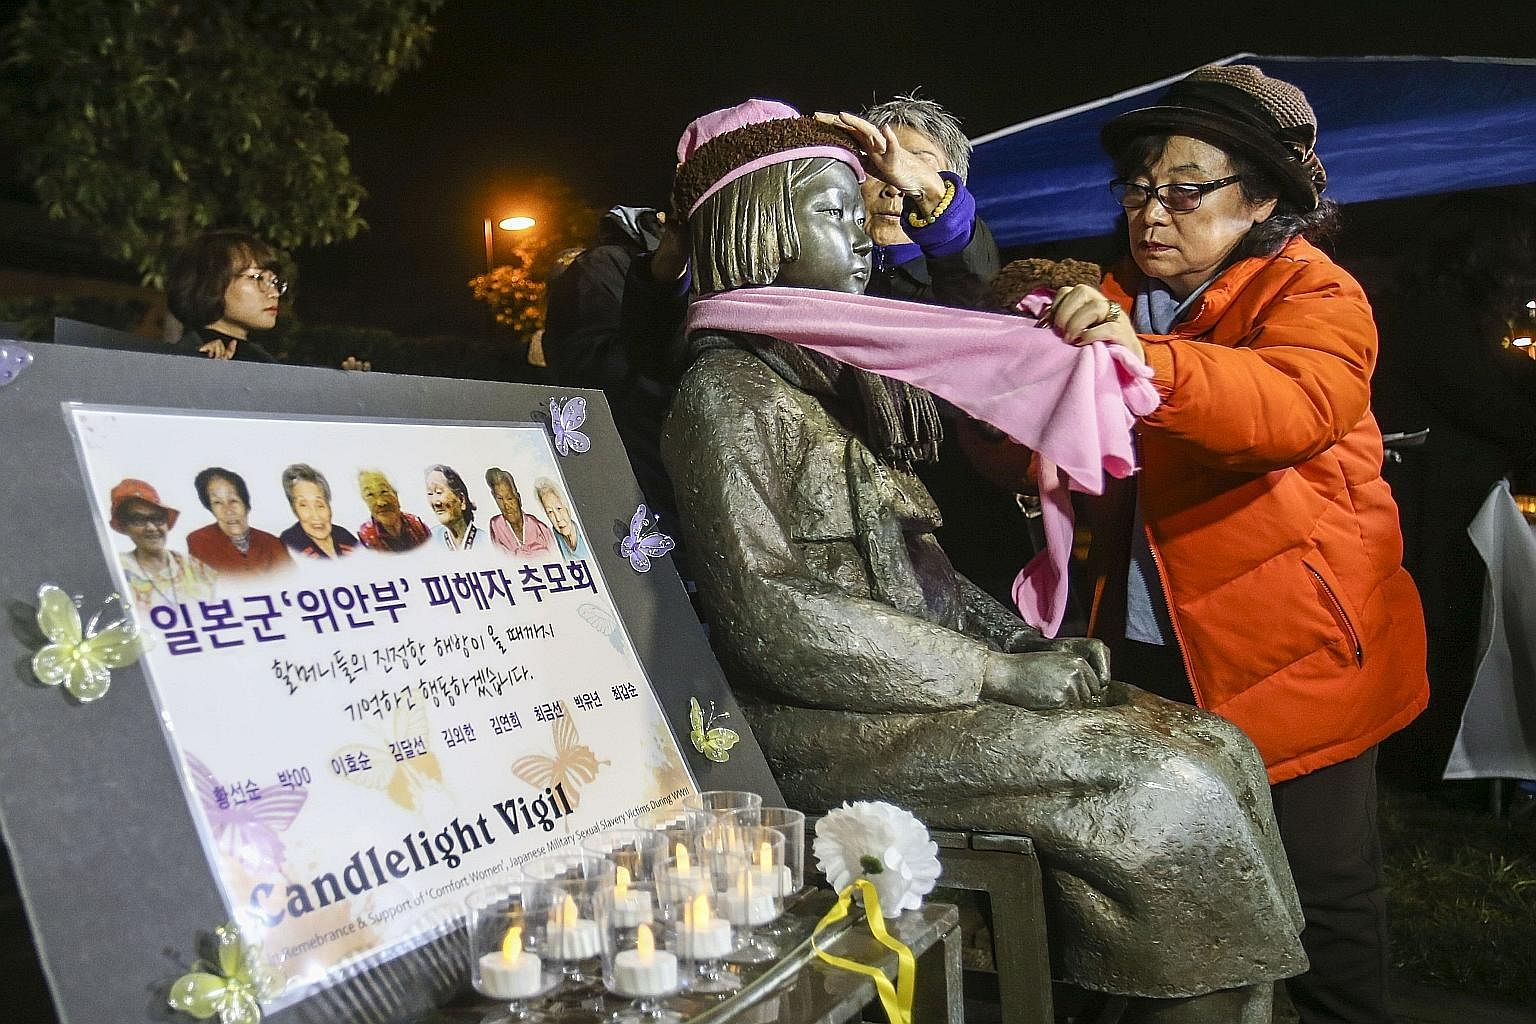 Supporters placing a scarf and a hat on a memorial statue honouring comfort women at Glendale Peace Monument in California during a candlelight vigil on Jan 5.